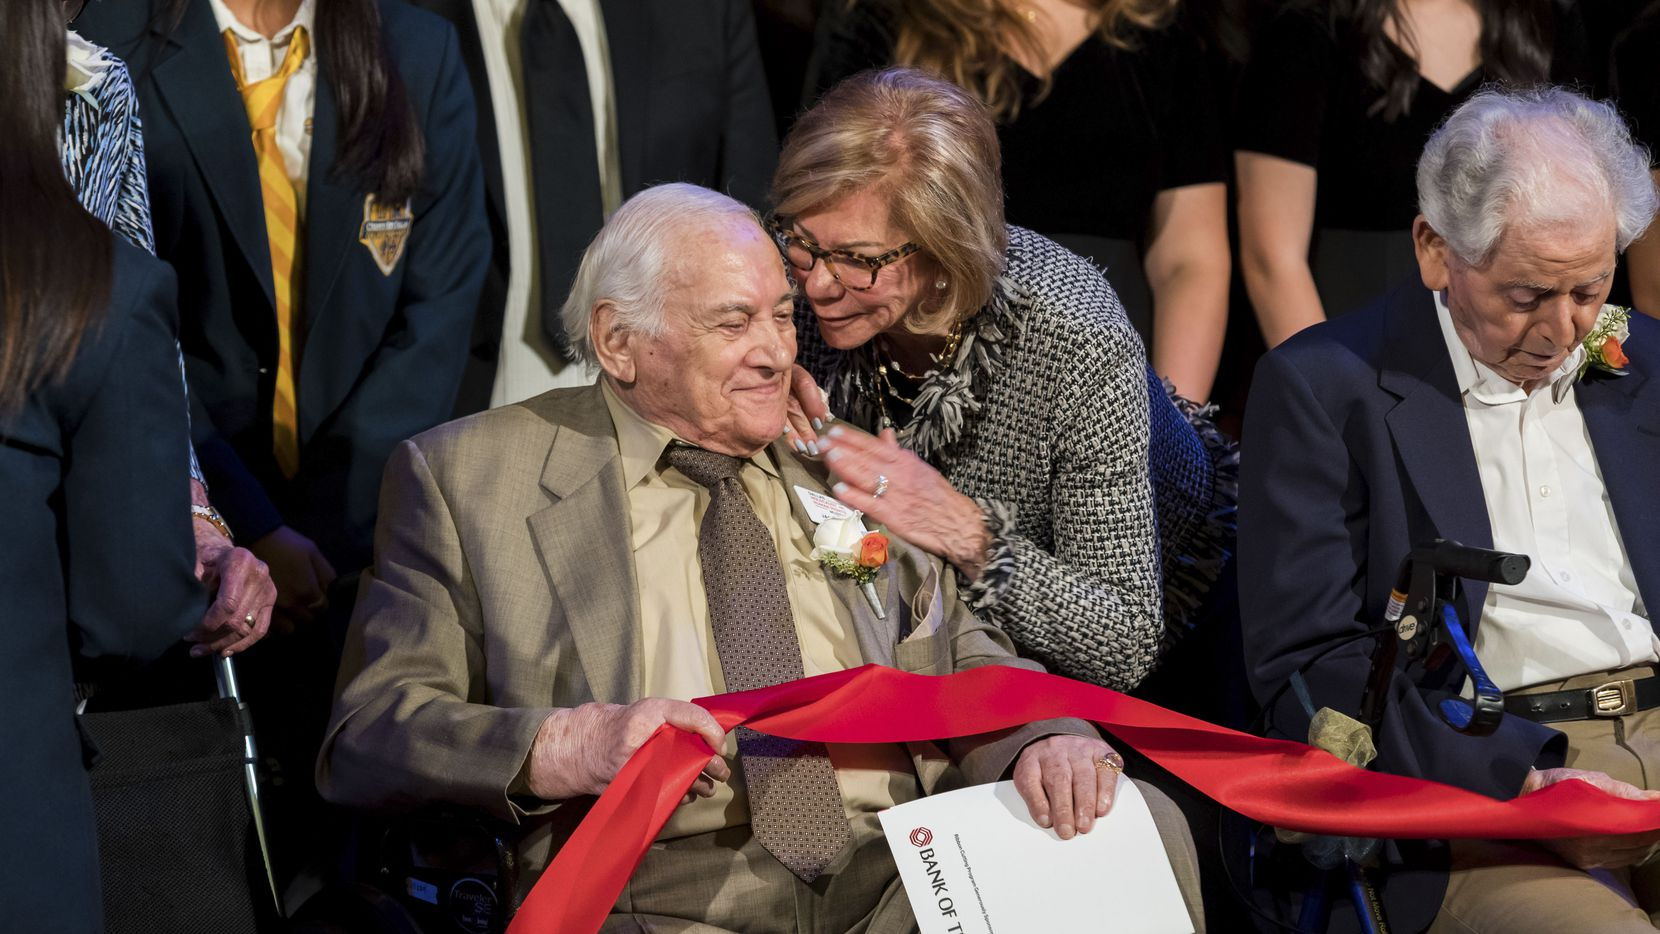 Holocaust survivor Jack Repp is embraced by Florence Shapiro during a ribbon cutting event the new Dallas Holocaust and Human Rights Museum on Nov. 17, 2019. Texas Governor Greg Abbott and other dignitaries joined, staff and Holocaust survivors onstage to cut the red ribbon for the new Dallas Holocaust and Human Rights Museum opening in downtown Dallas, Tuesday, September 17, 2019.